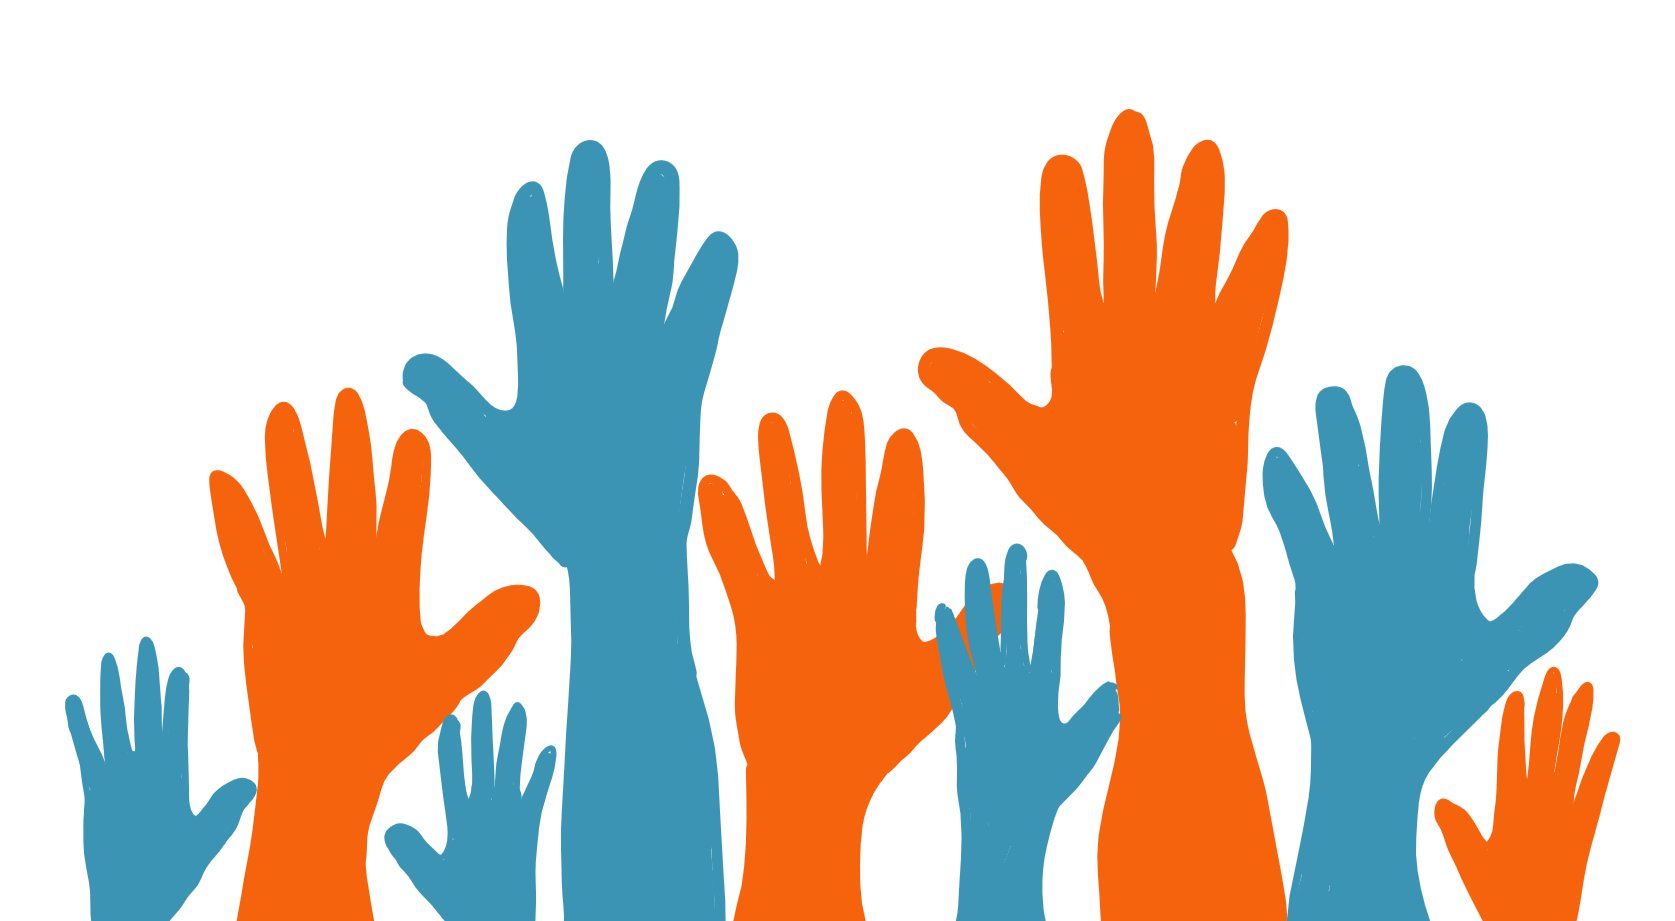 An image of many raised hands coloured in blue and orange.